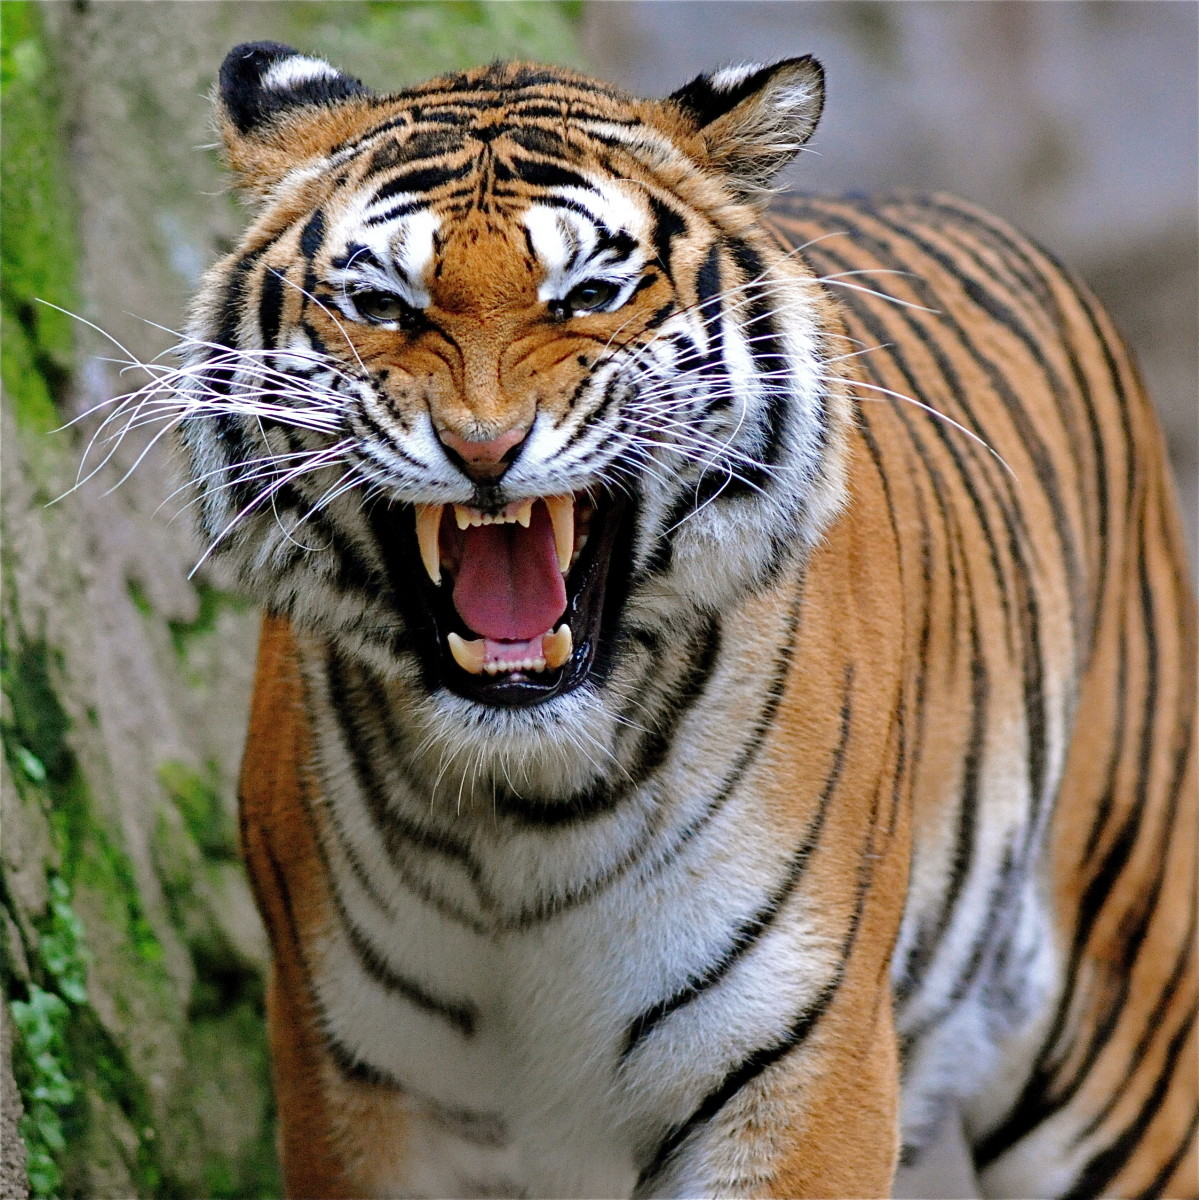 By claudiogennari (Tiger attak...  Uploaded by Japan Maik), CC-BY-2.0, via Wikimedia Commons